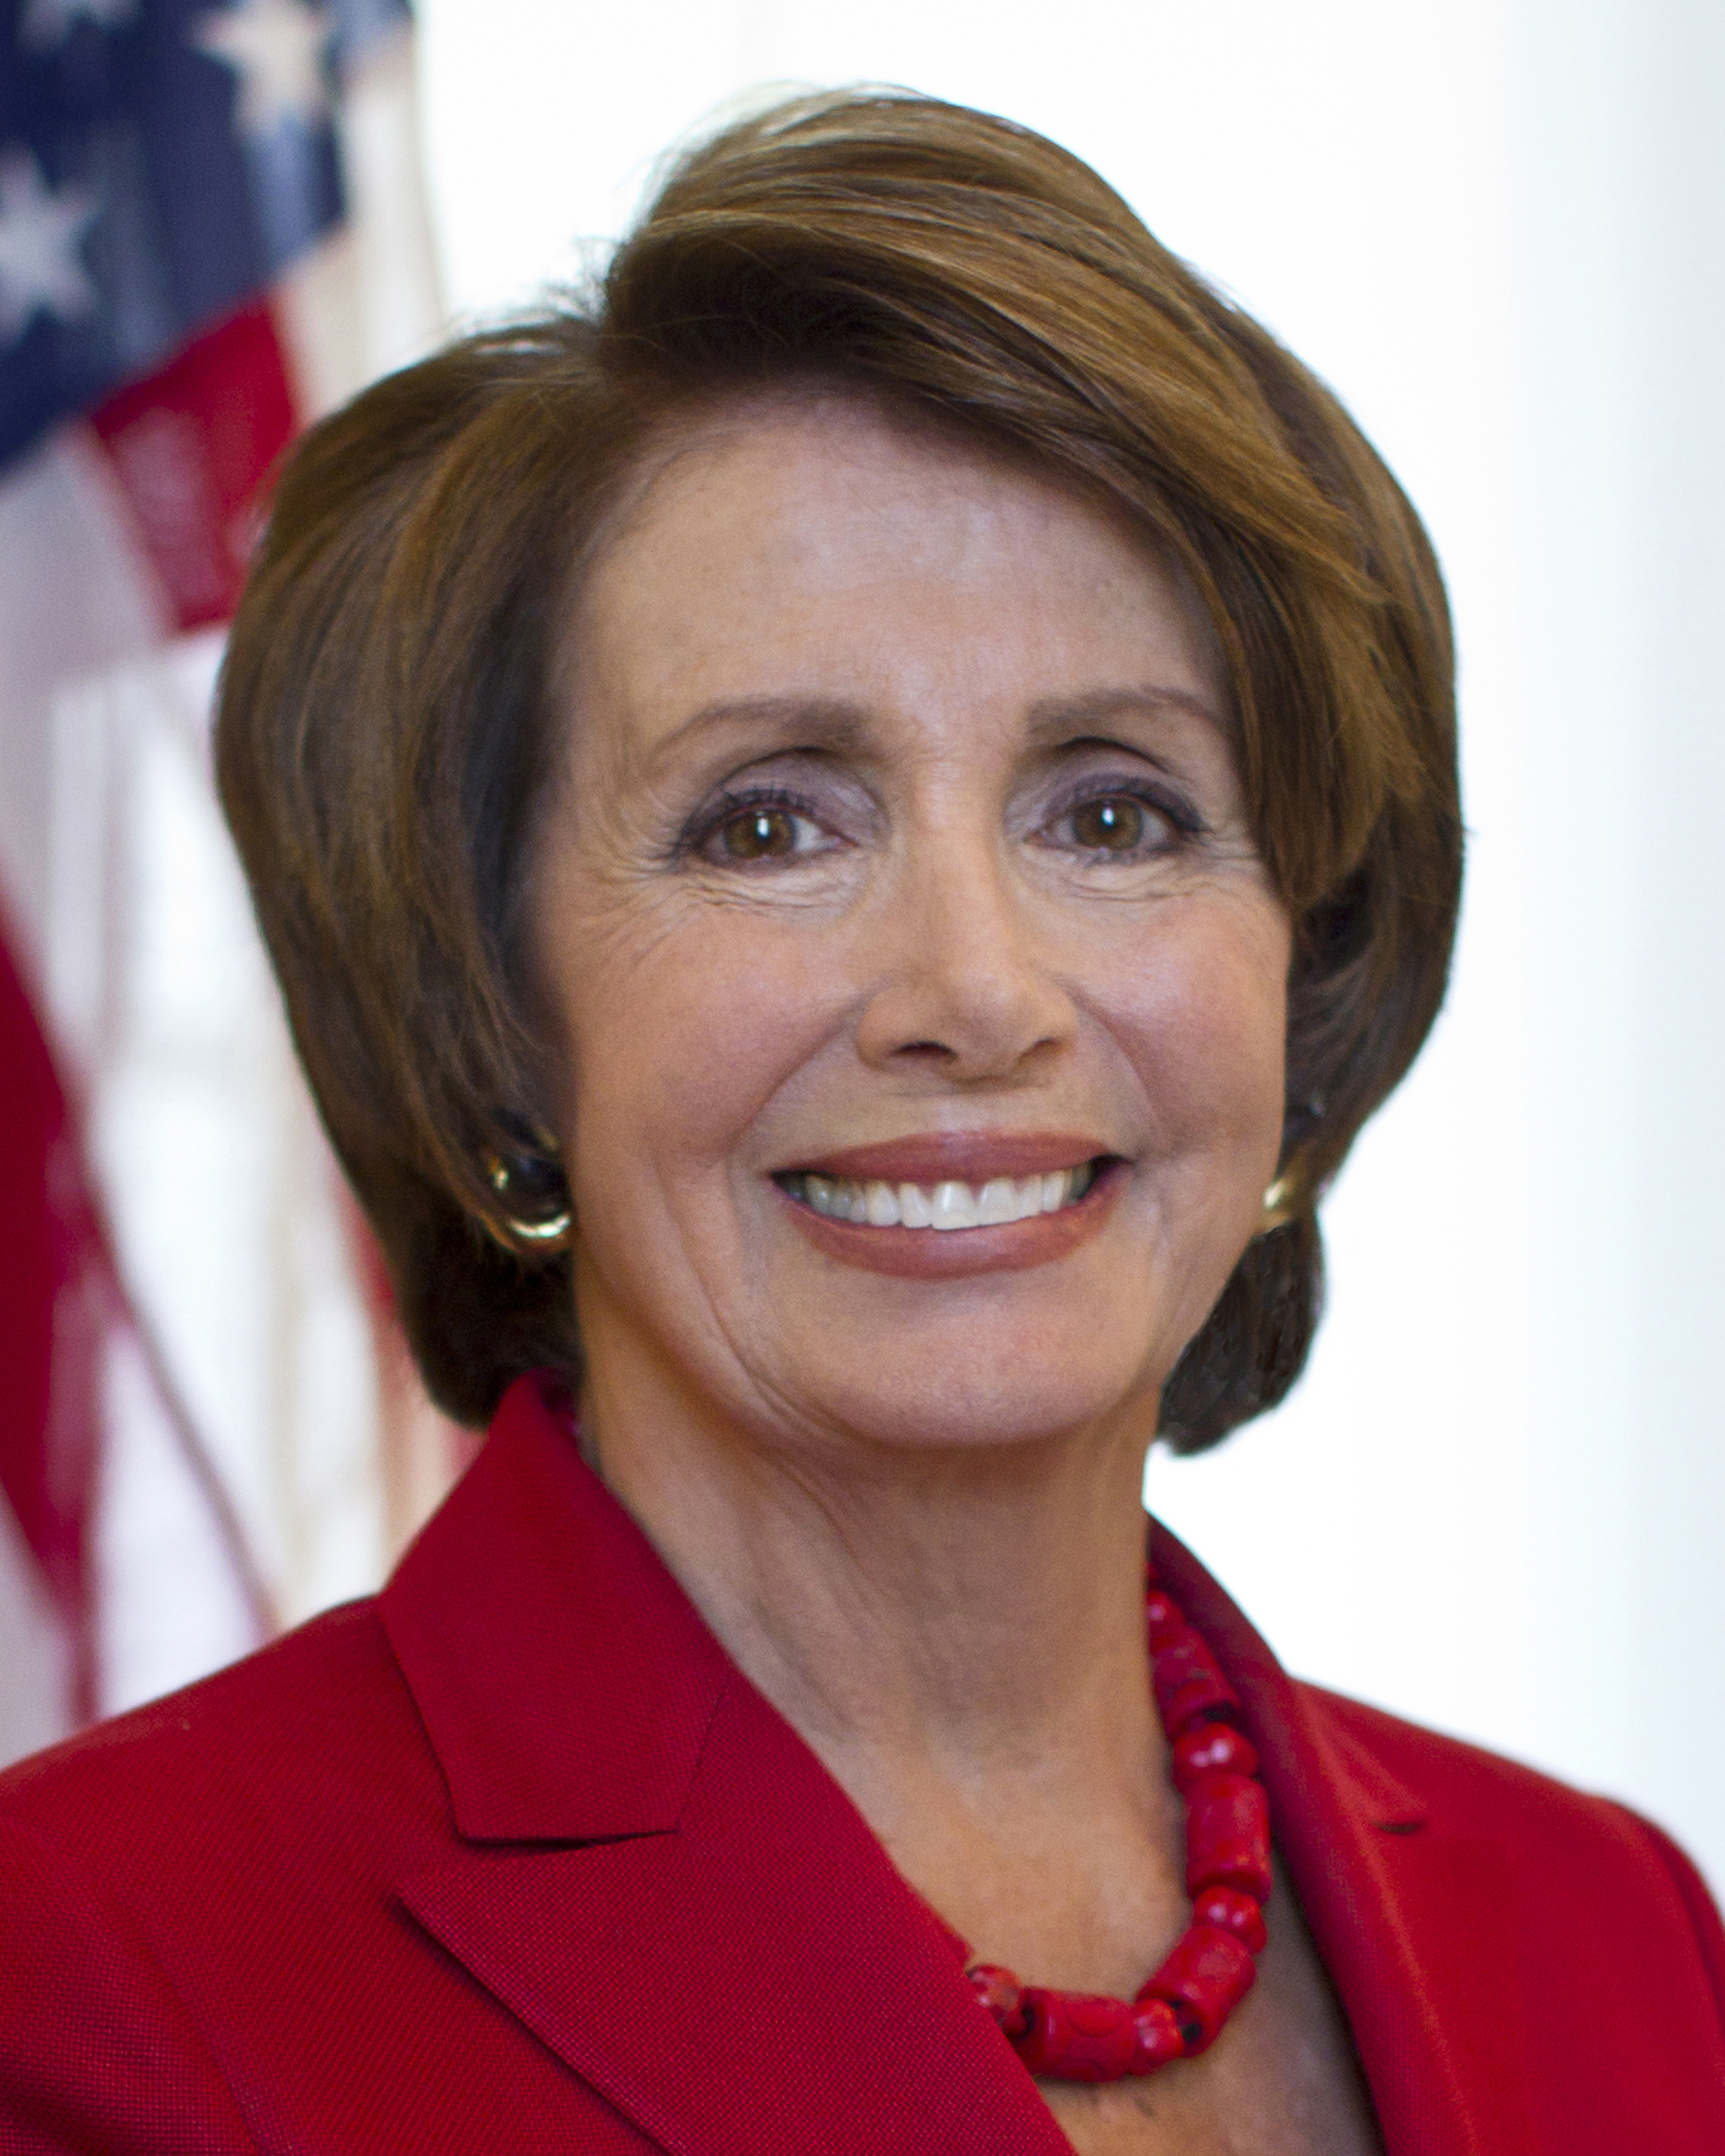 Nancy Pelosi portrait for then Speaker of the House 2012. Courtesy of Wikipedia Commons